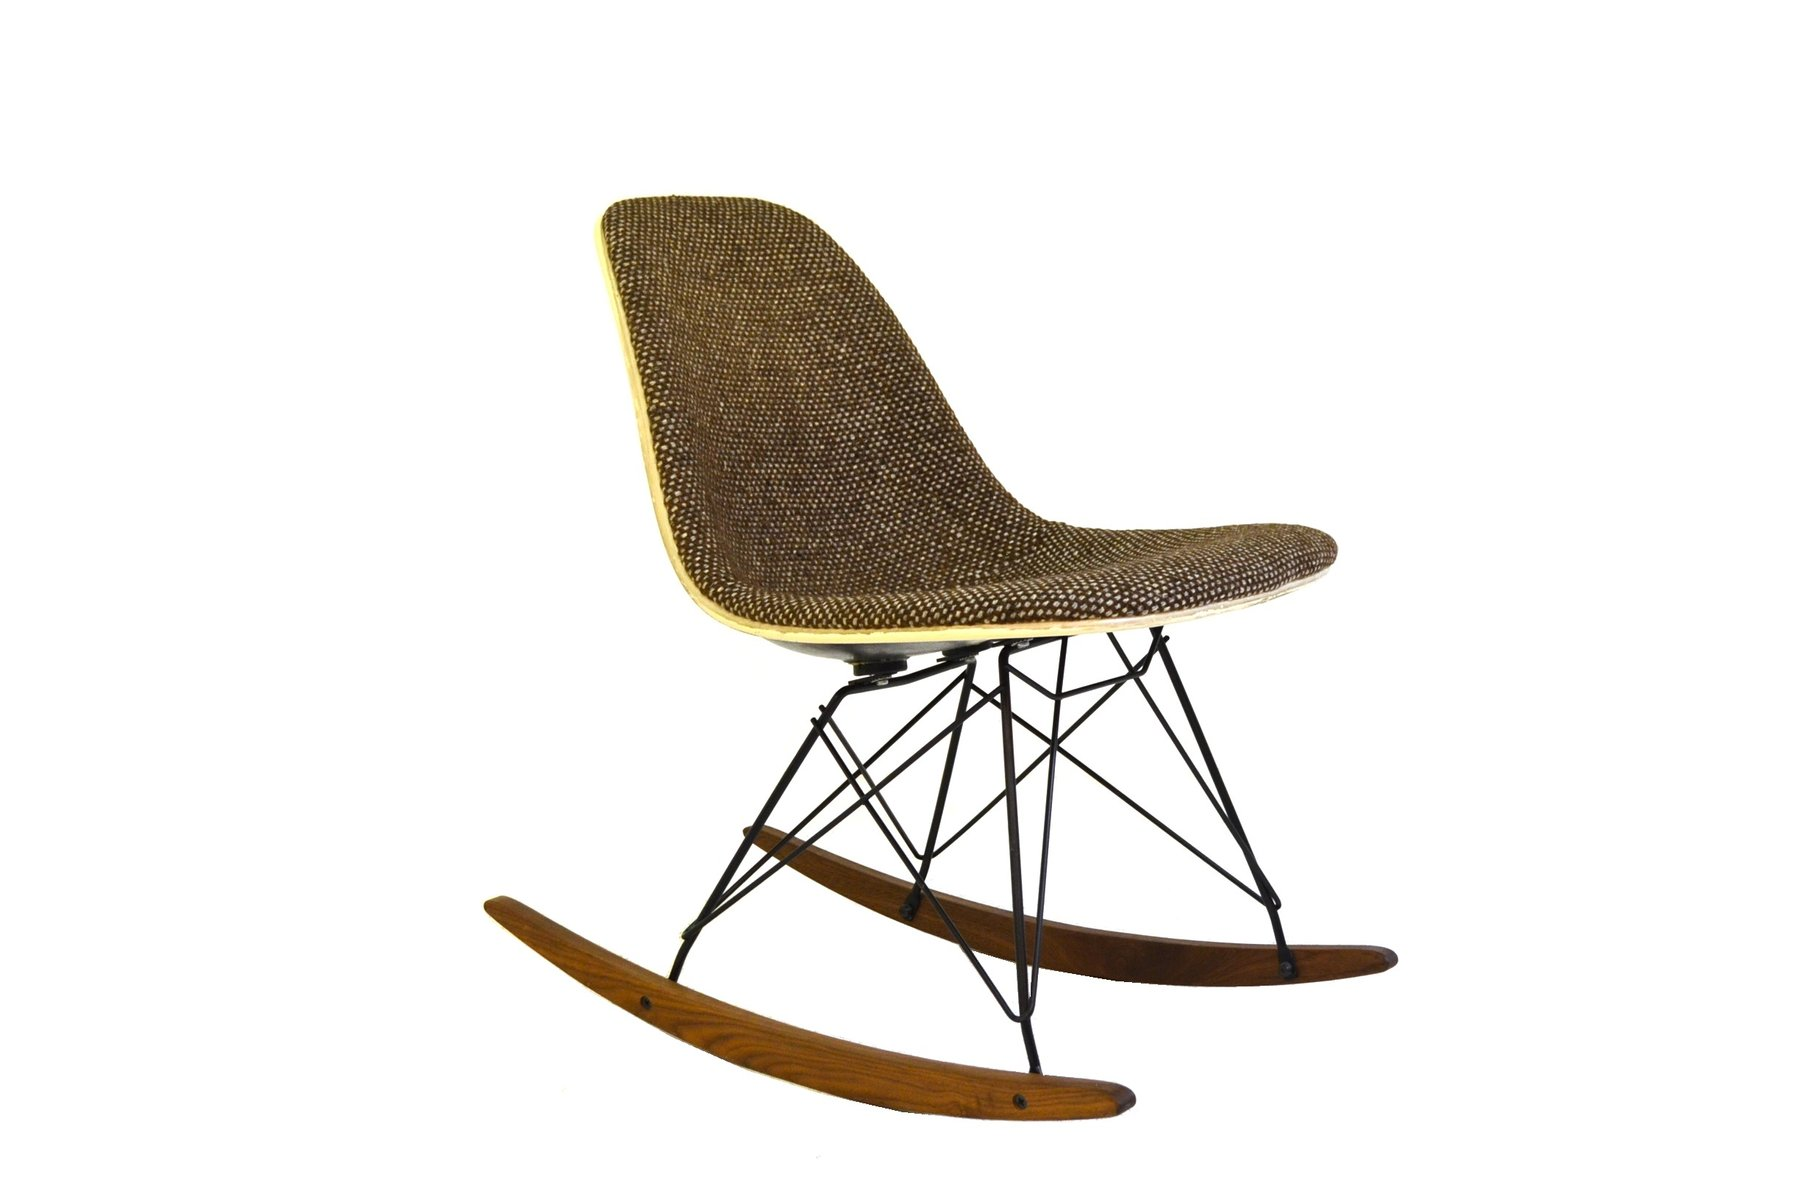 rocking chair by charles eames for herman miller 1948 for. Black Bedroom Furniture Sets. Home Design Ideas